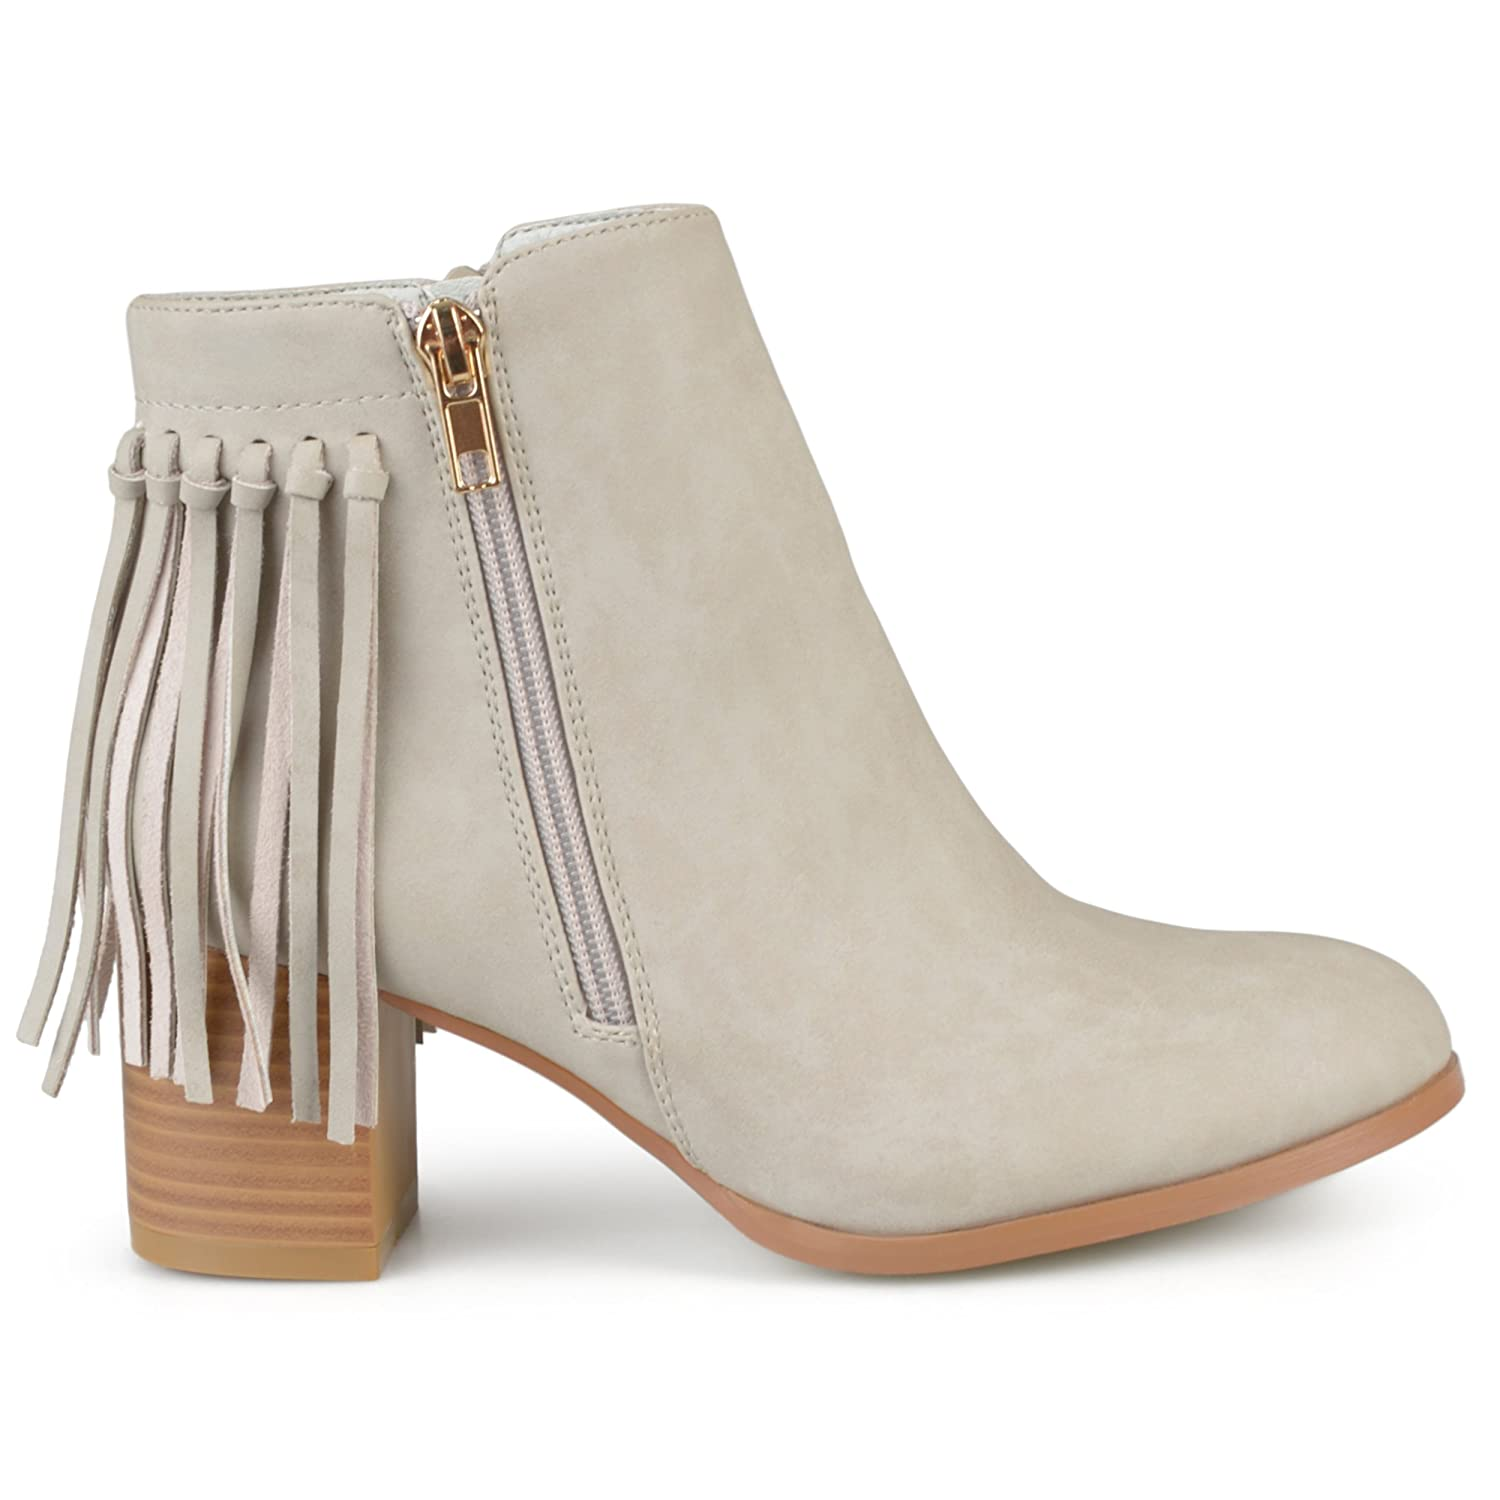 7879c3e7e65 70%OFF Brinley Co. Womens Faux Leather Stacked Heel Fringe Ankle ...